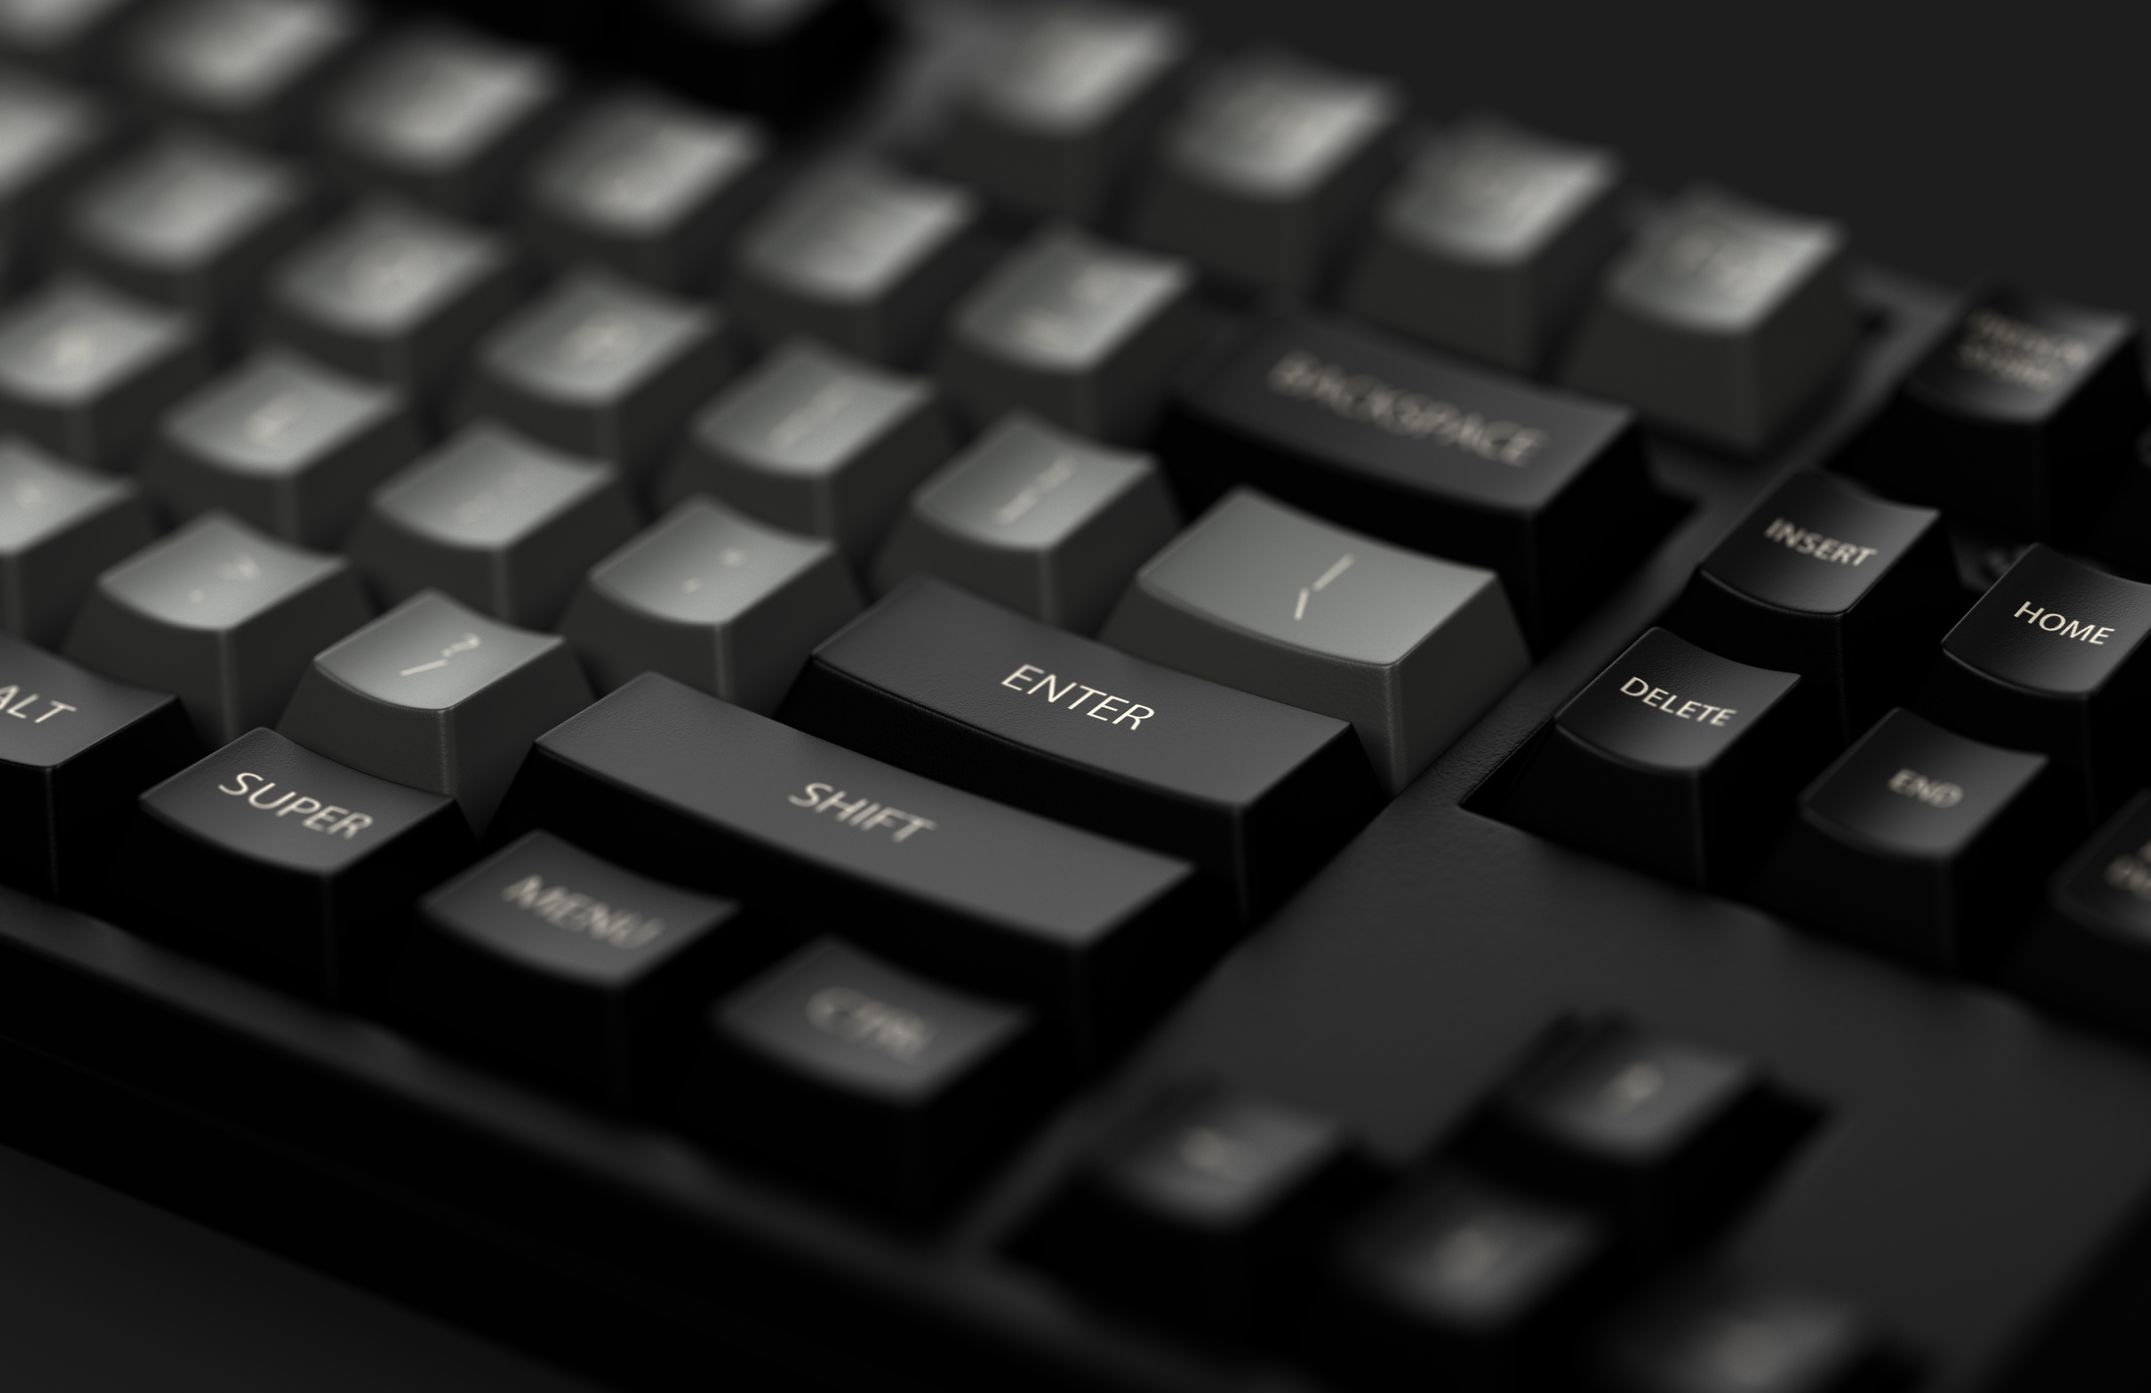 How to Lock Your Keyboard Temporarily